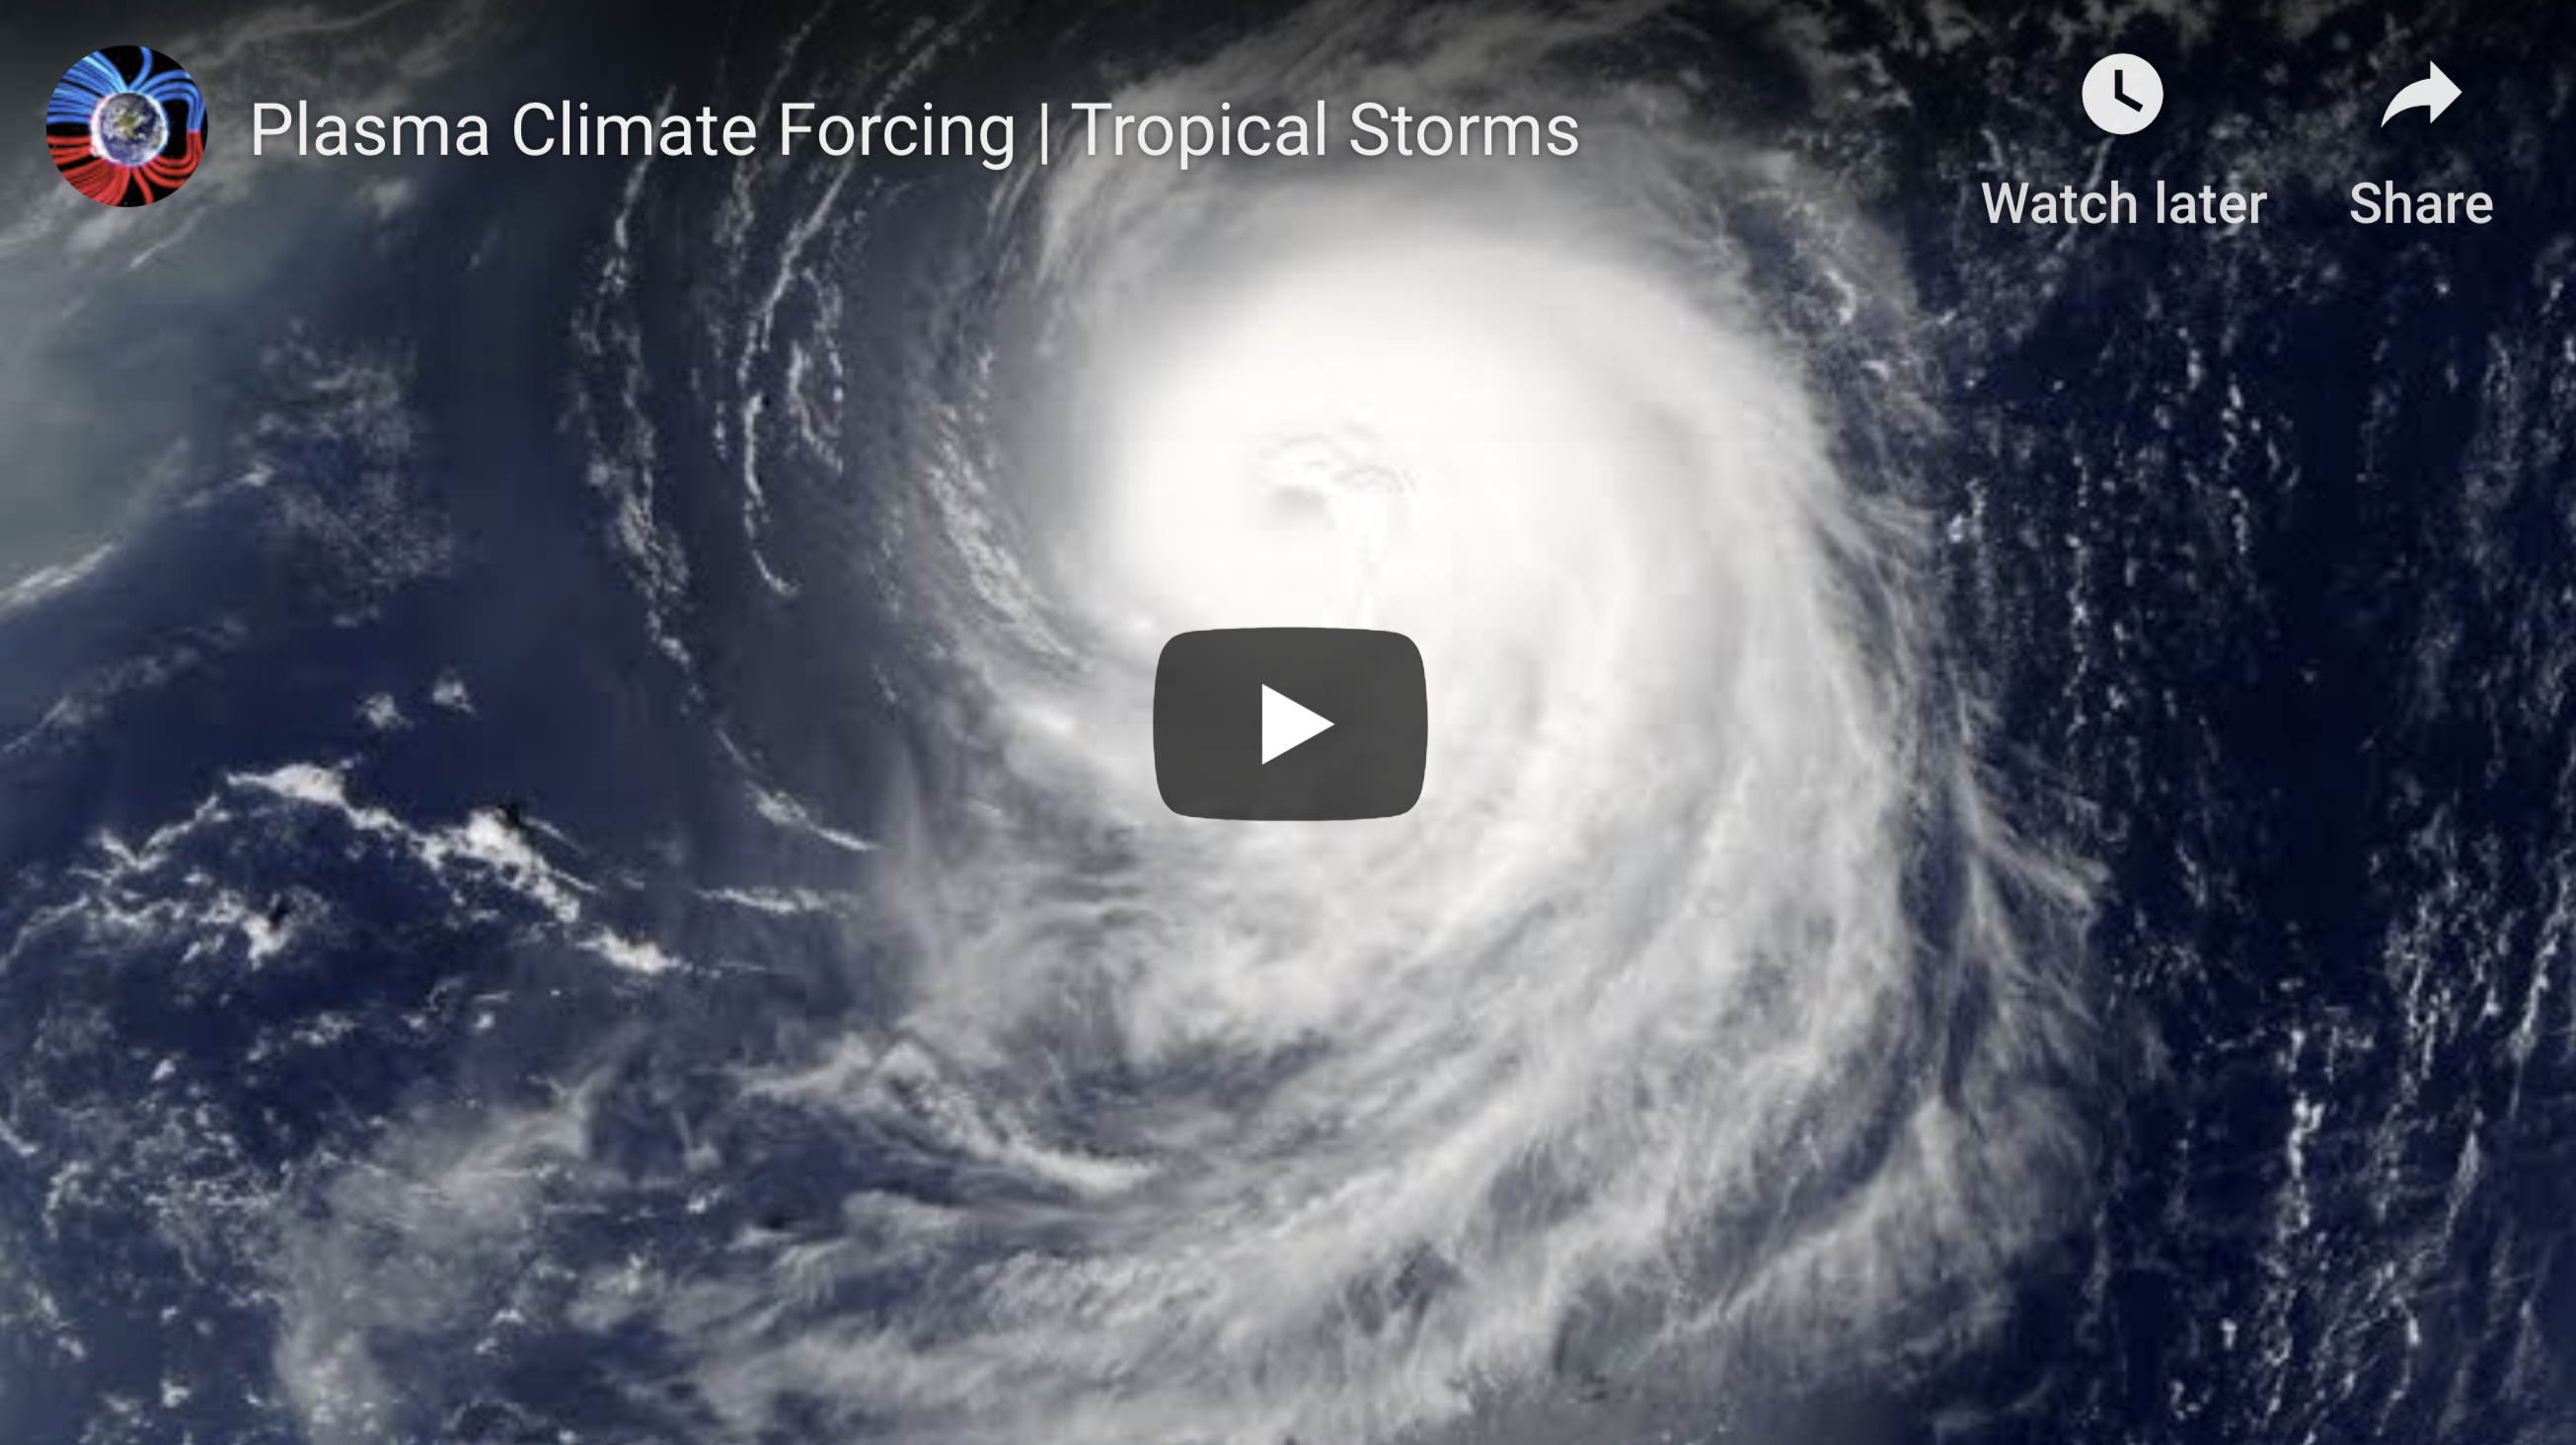 Plasma Climate Forcing Tropical Storms 1 15 2020